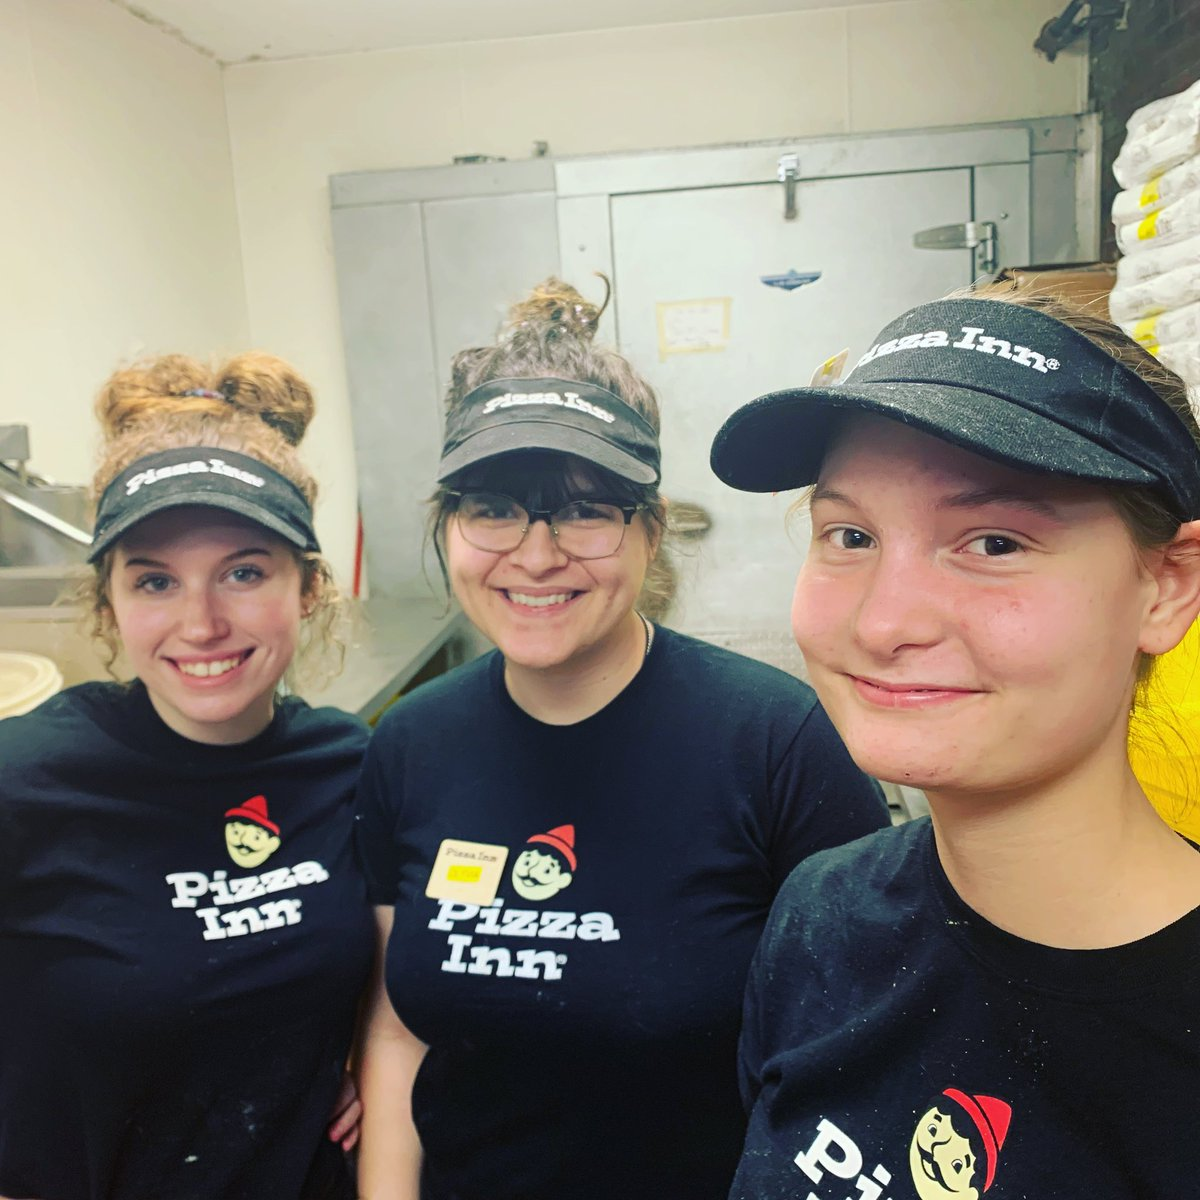 Weekends are for family and friends. Get your squad together and come and see us. 👧 👧 👧 🍕 🍕 🍕  #pizzainn #friends #family #weekendvibes #weekendvibesonly #thecrew #shanna #olyvia #makayla